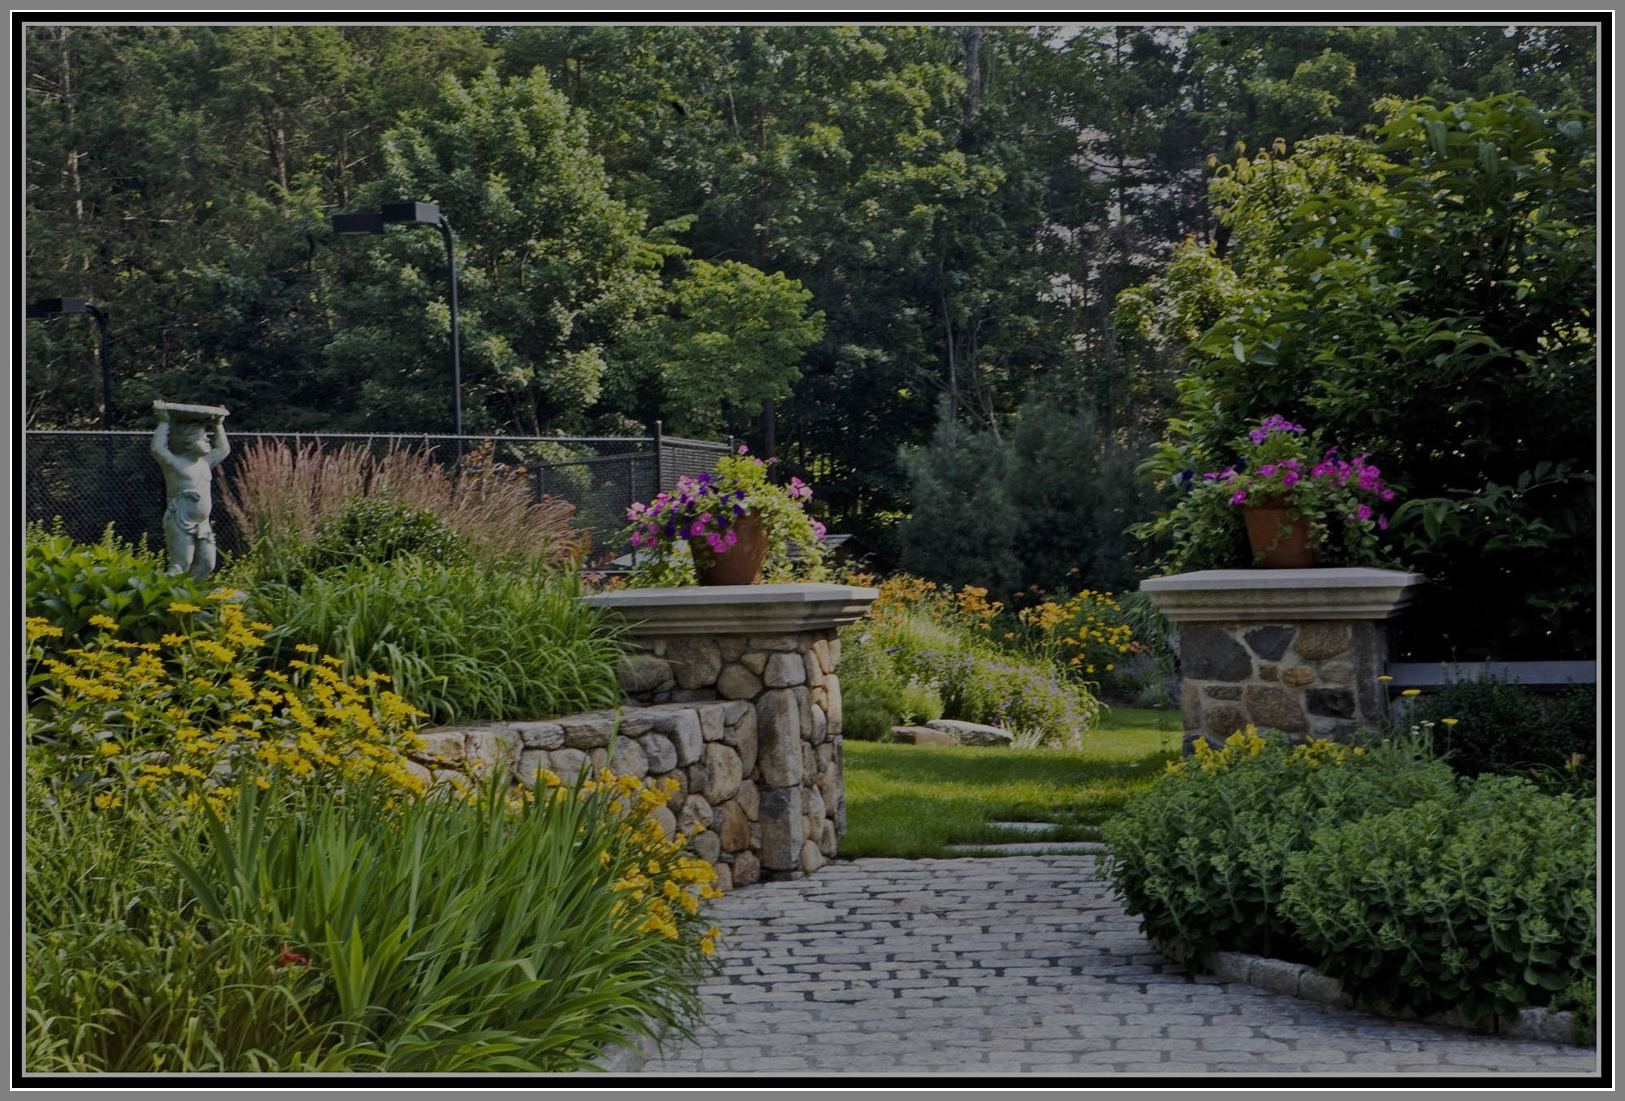 Garden with Urns/ ornaments by Artistic Outdoors